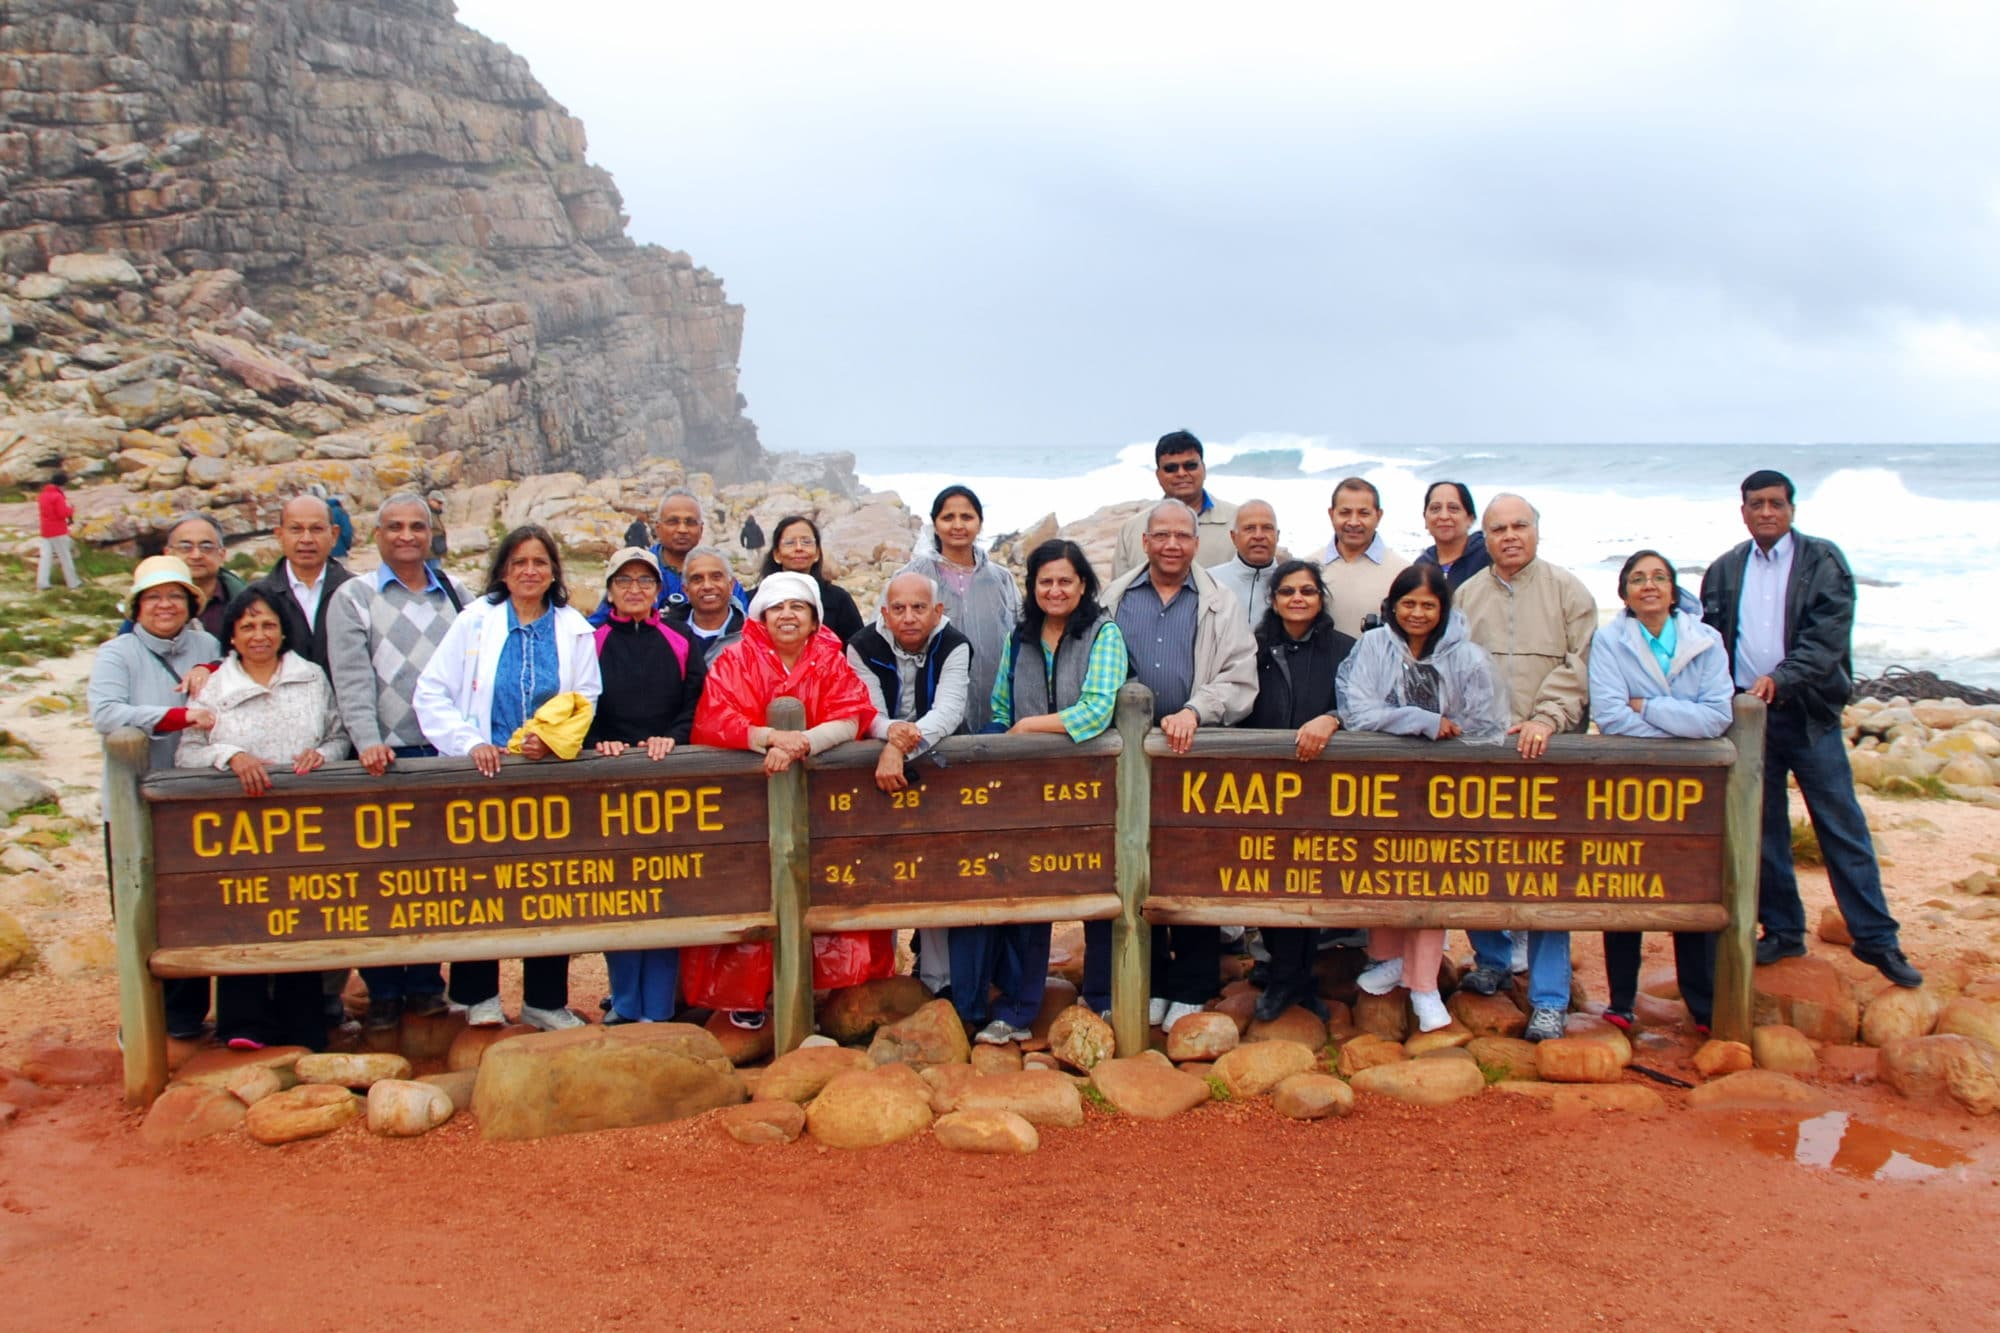 Friends group picture in from of cape of good hope